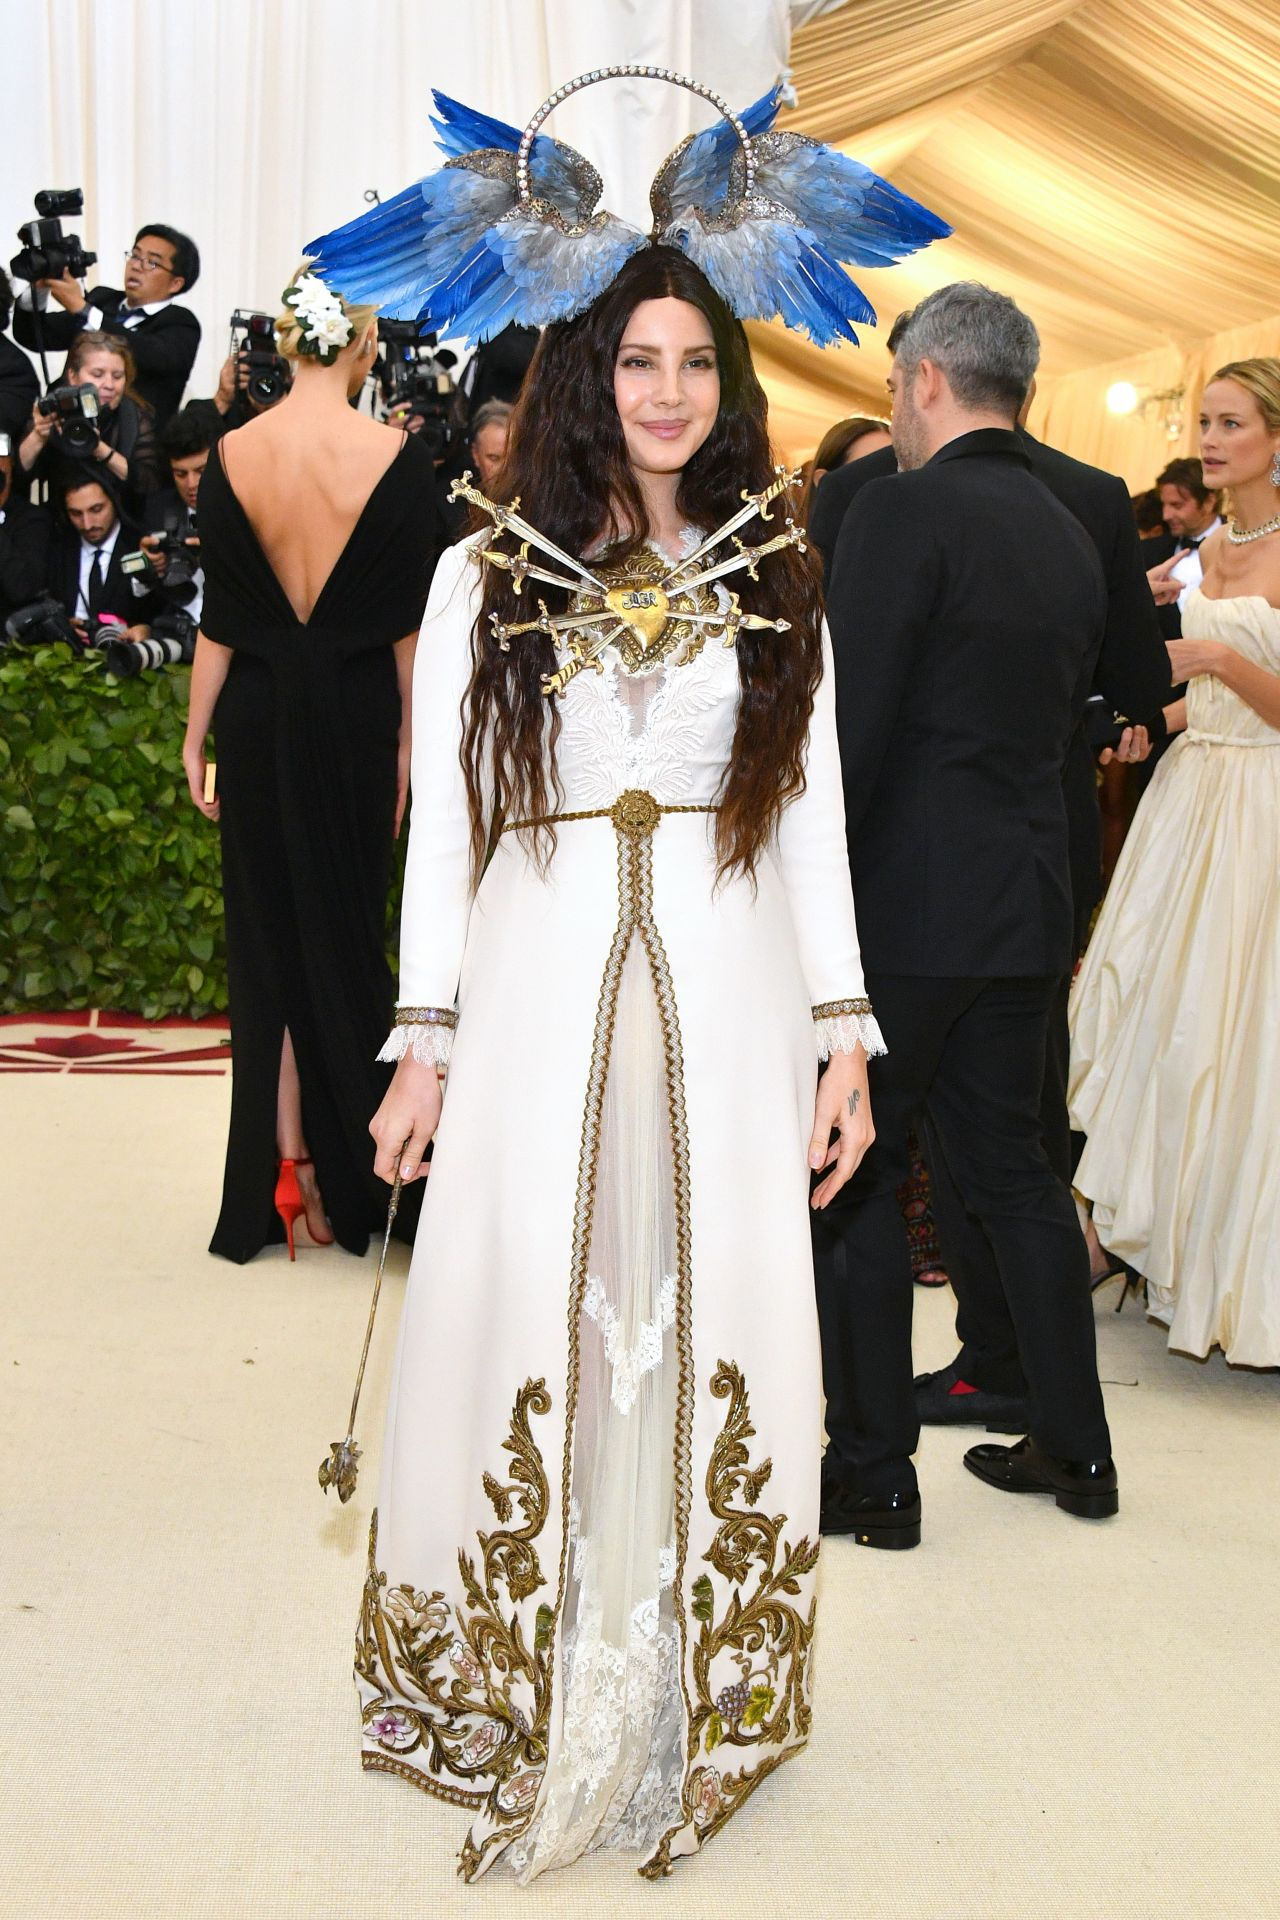 IRIS Covet Book FASHIONS BIGGEST NIGHT OF THE YEAR THE 2018 MET GALA